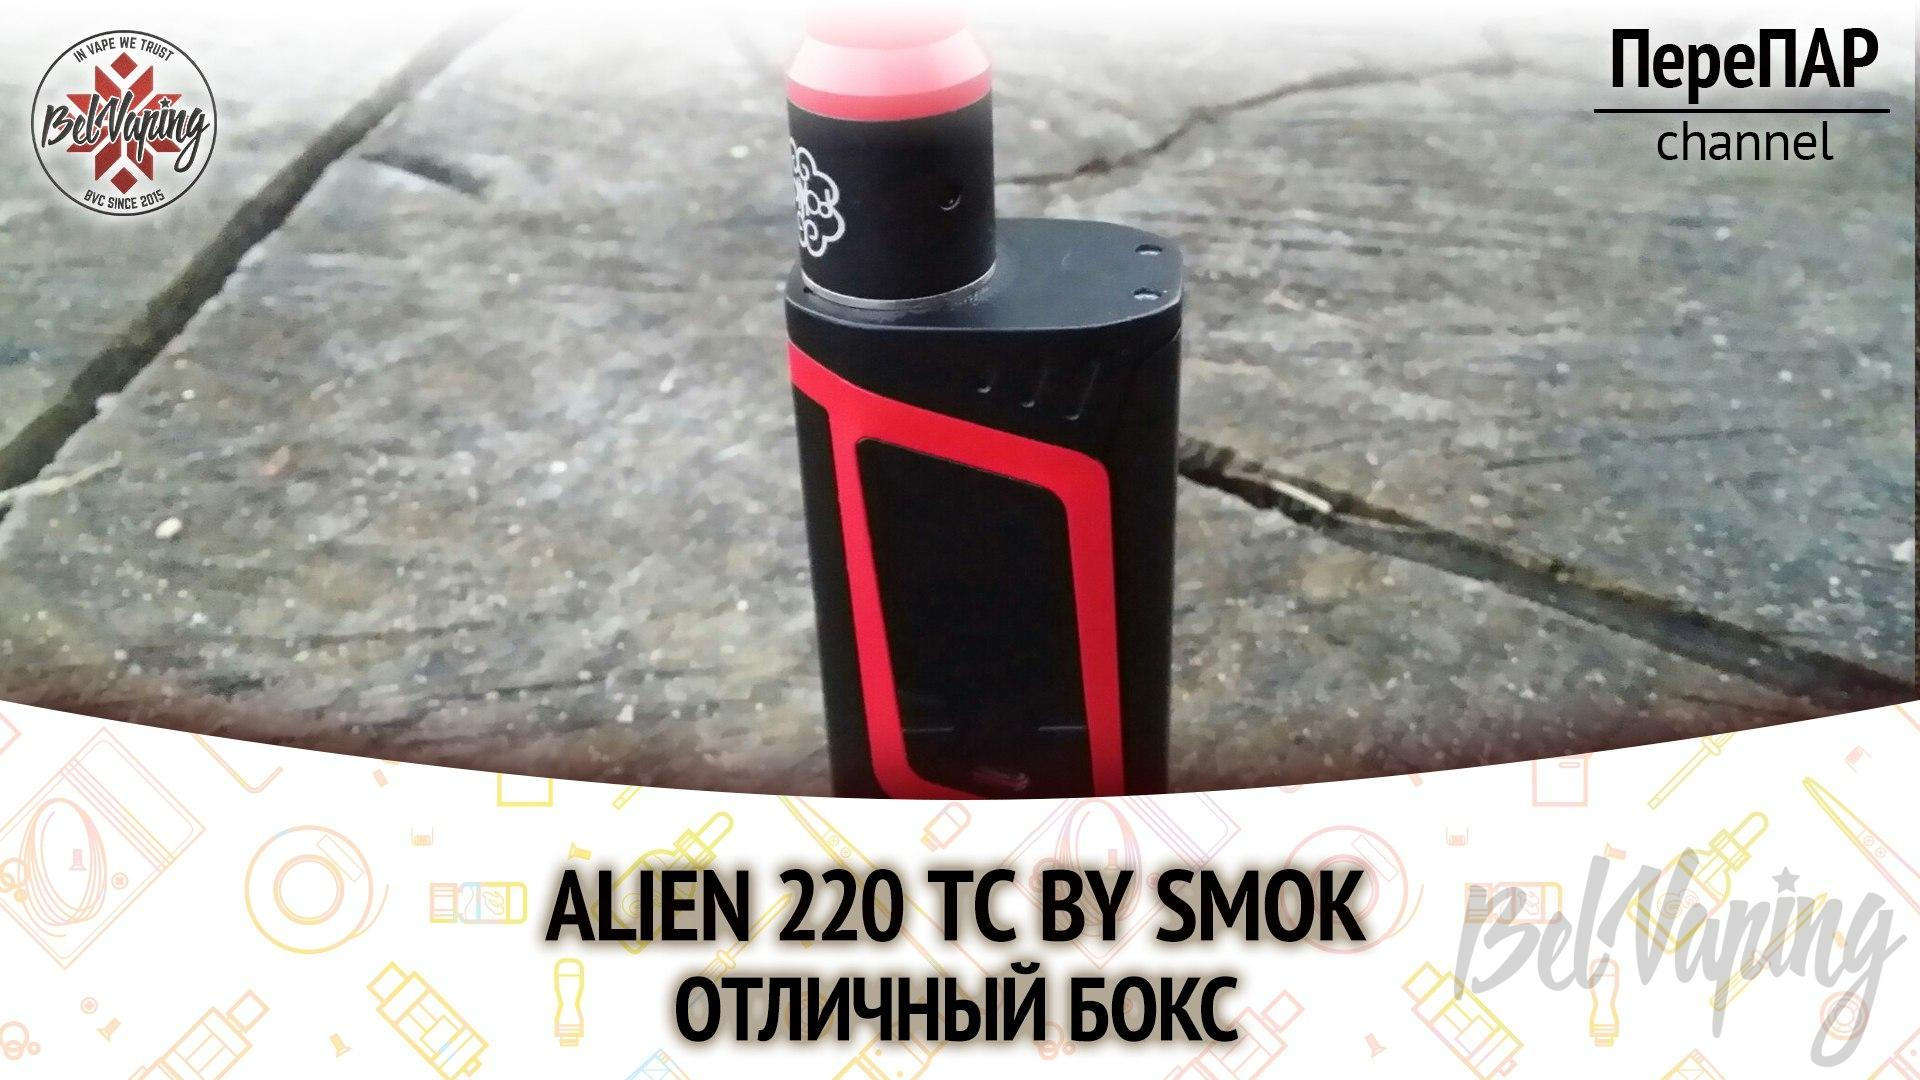 Обзор боксмода Smok Alien 220TC